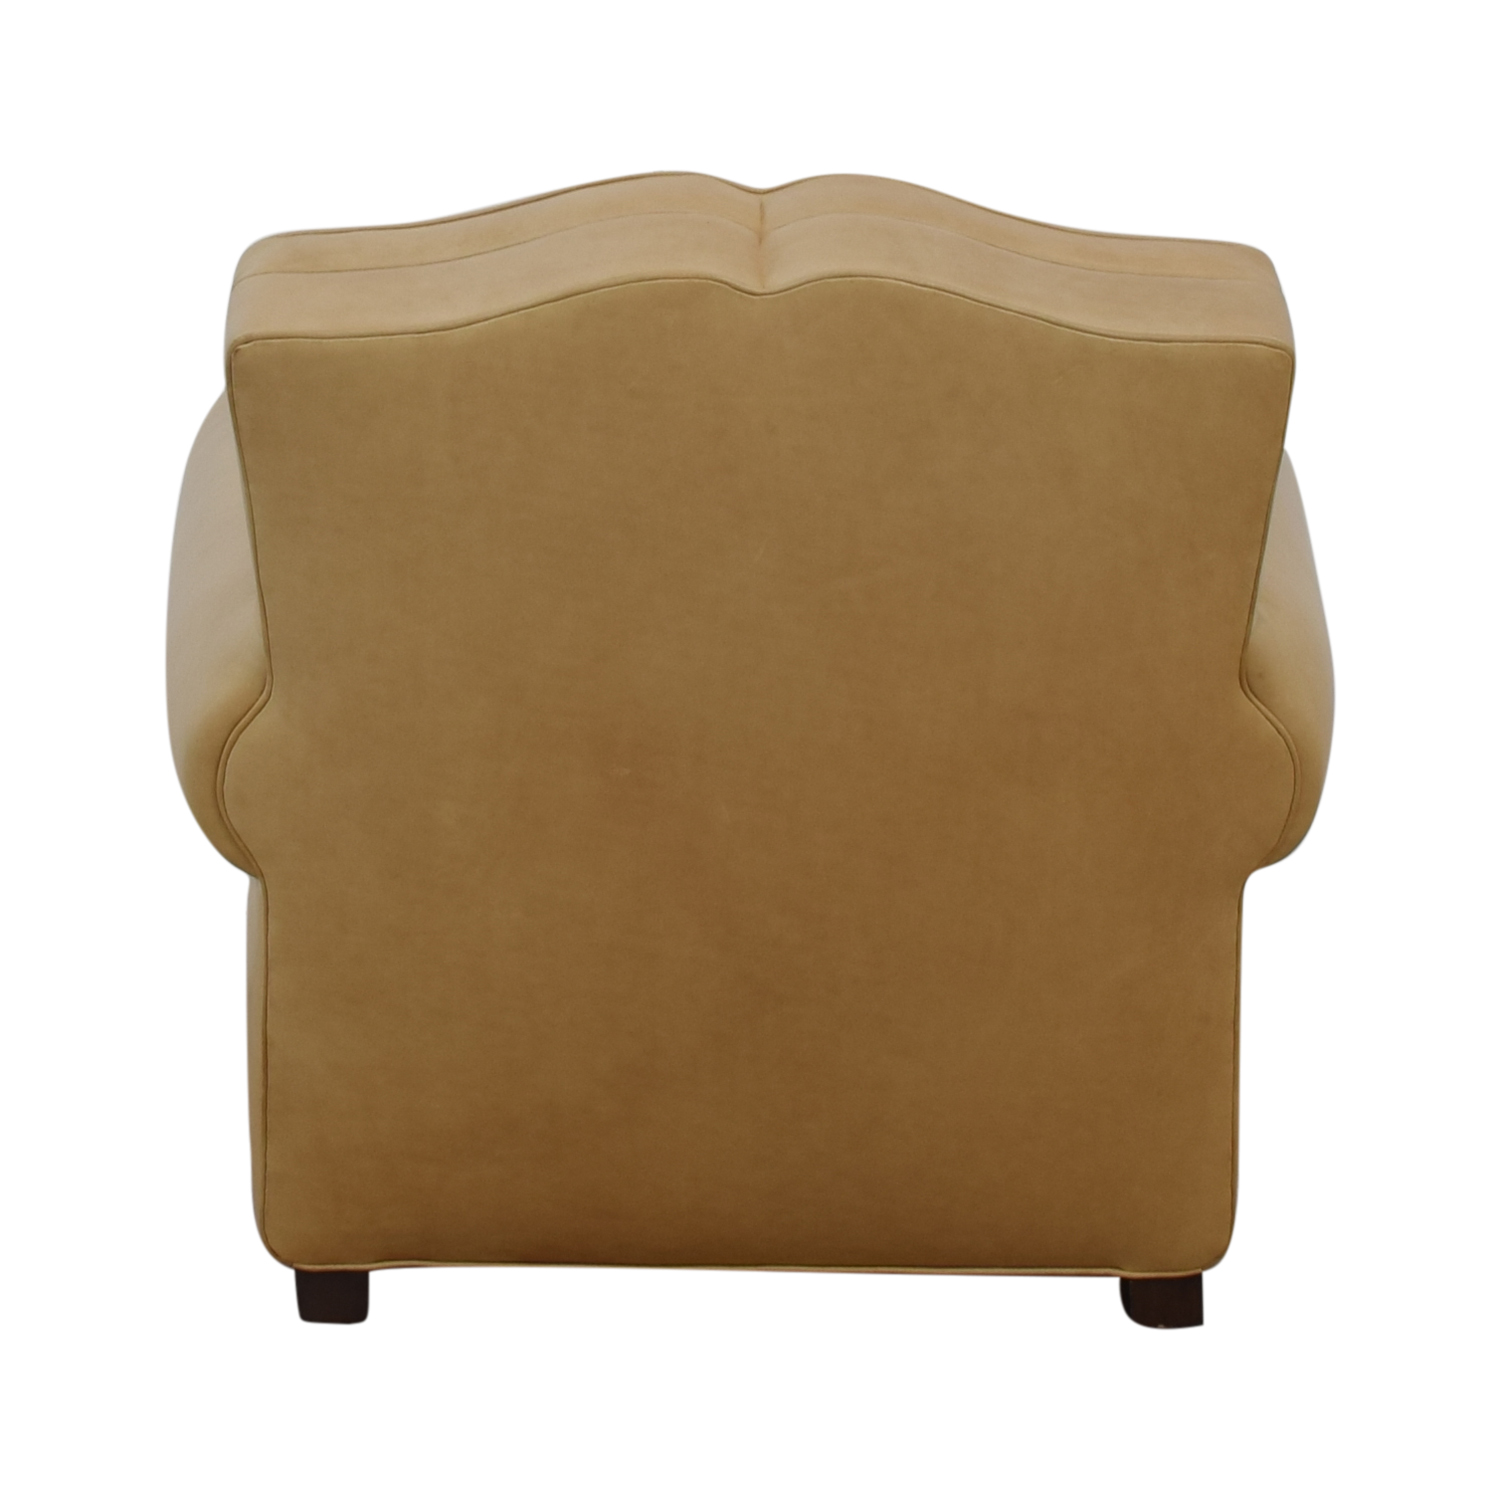 Furniture Masters Furniture Masters Neutral Club Chair price